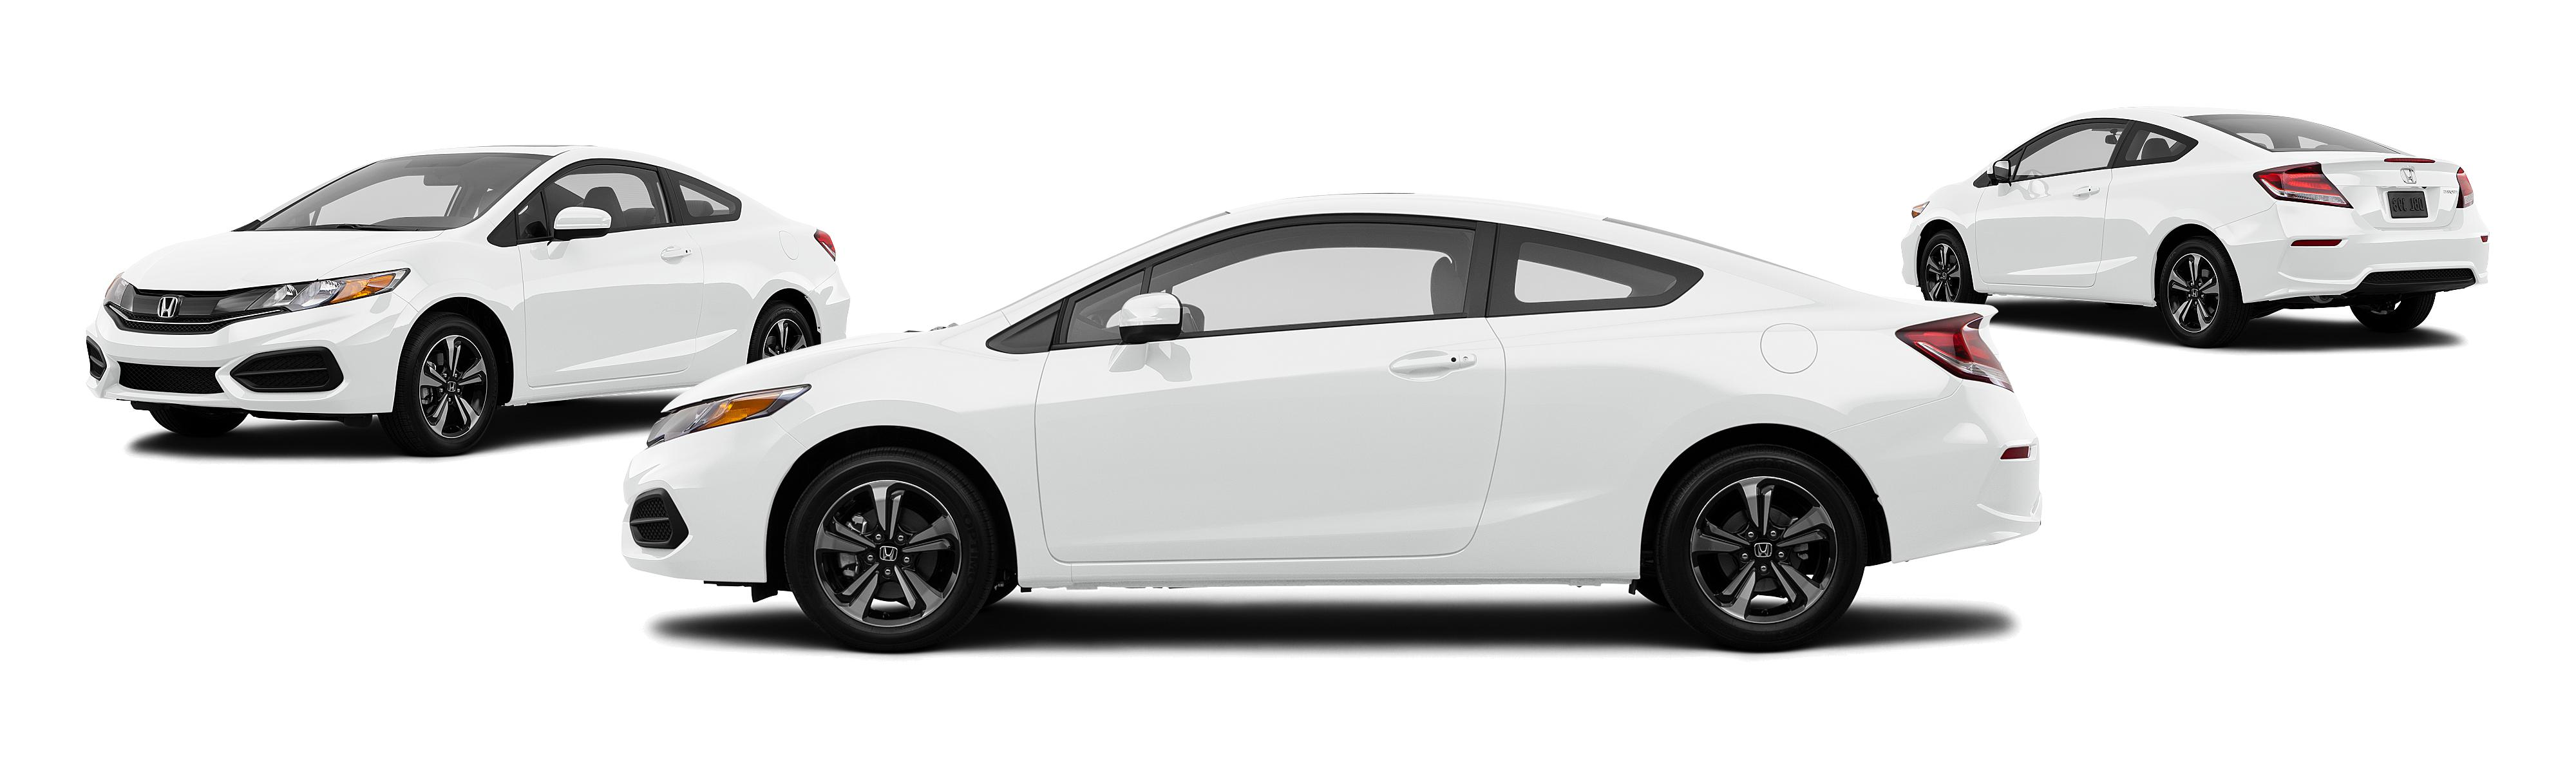 wholesale full challenger civic listings ex auto honda